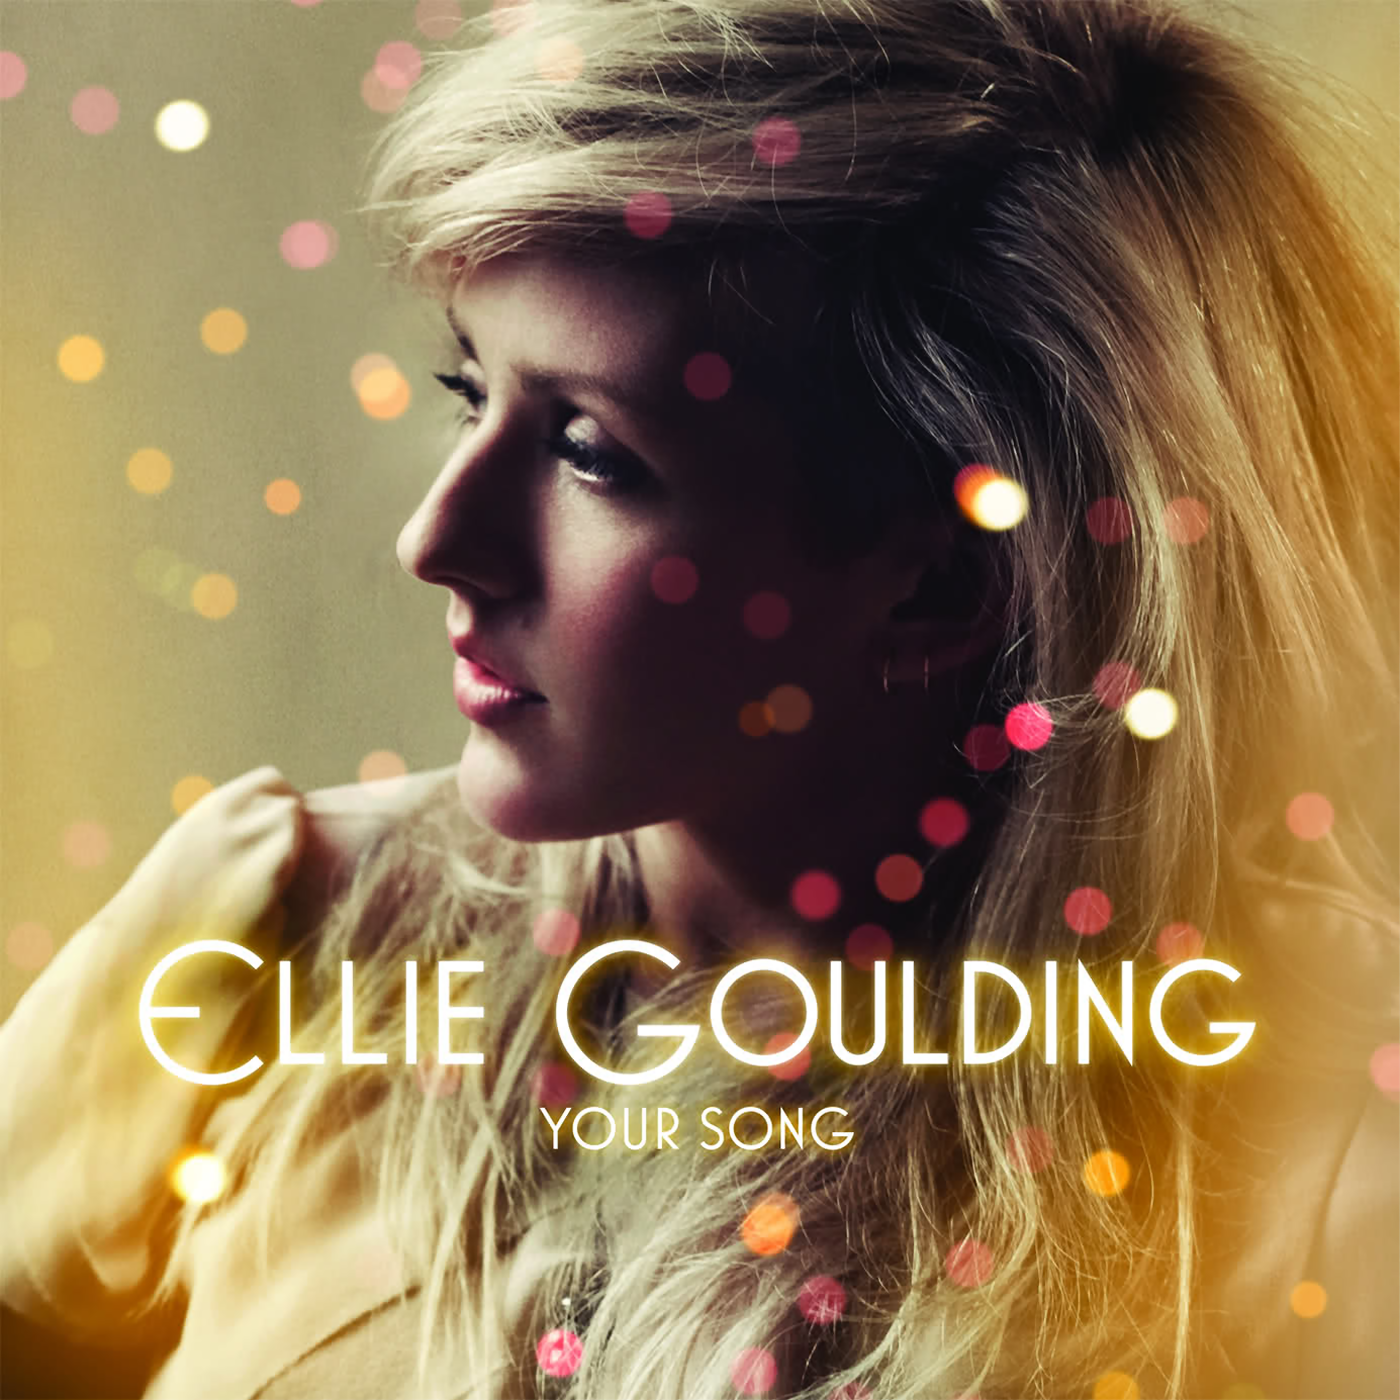 Ellie goulding your song single ideas for the house your song by ellie goulding ukulele tabs and chords free and guaranteed quality tablature with ukulele chord charts transposer and auto scroller hexwebz Image collections